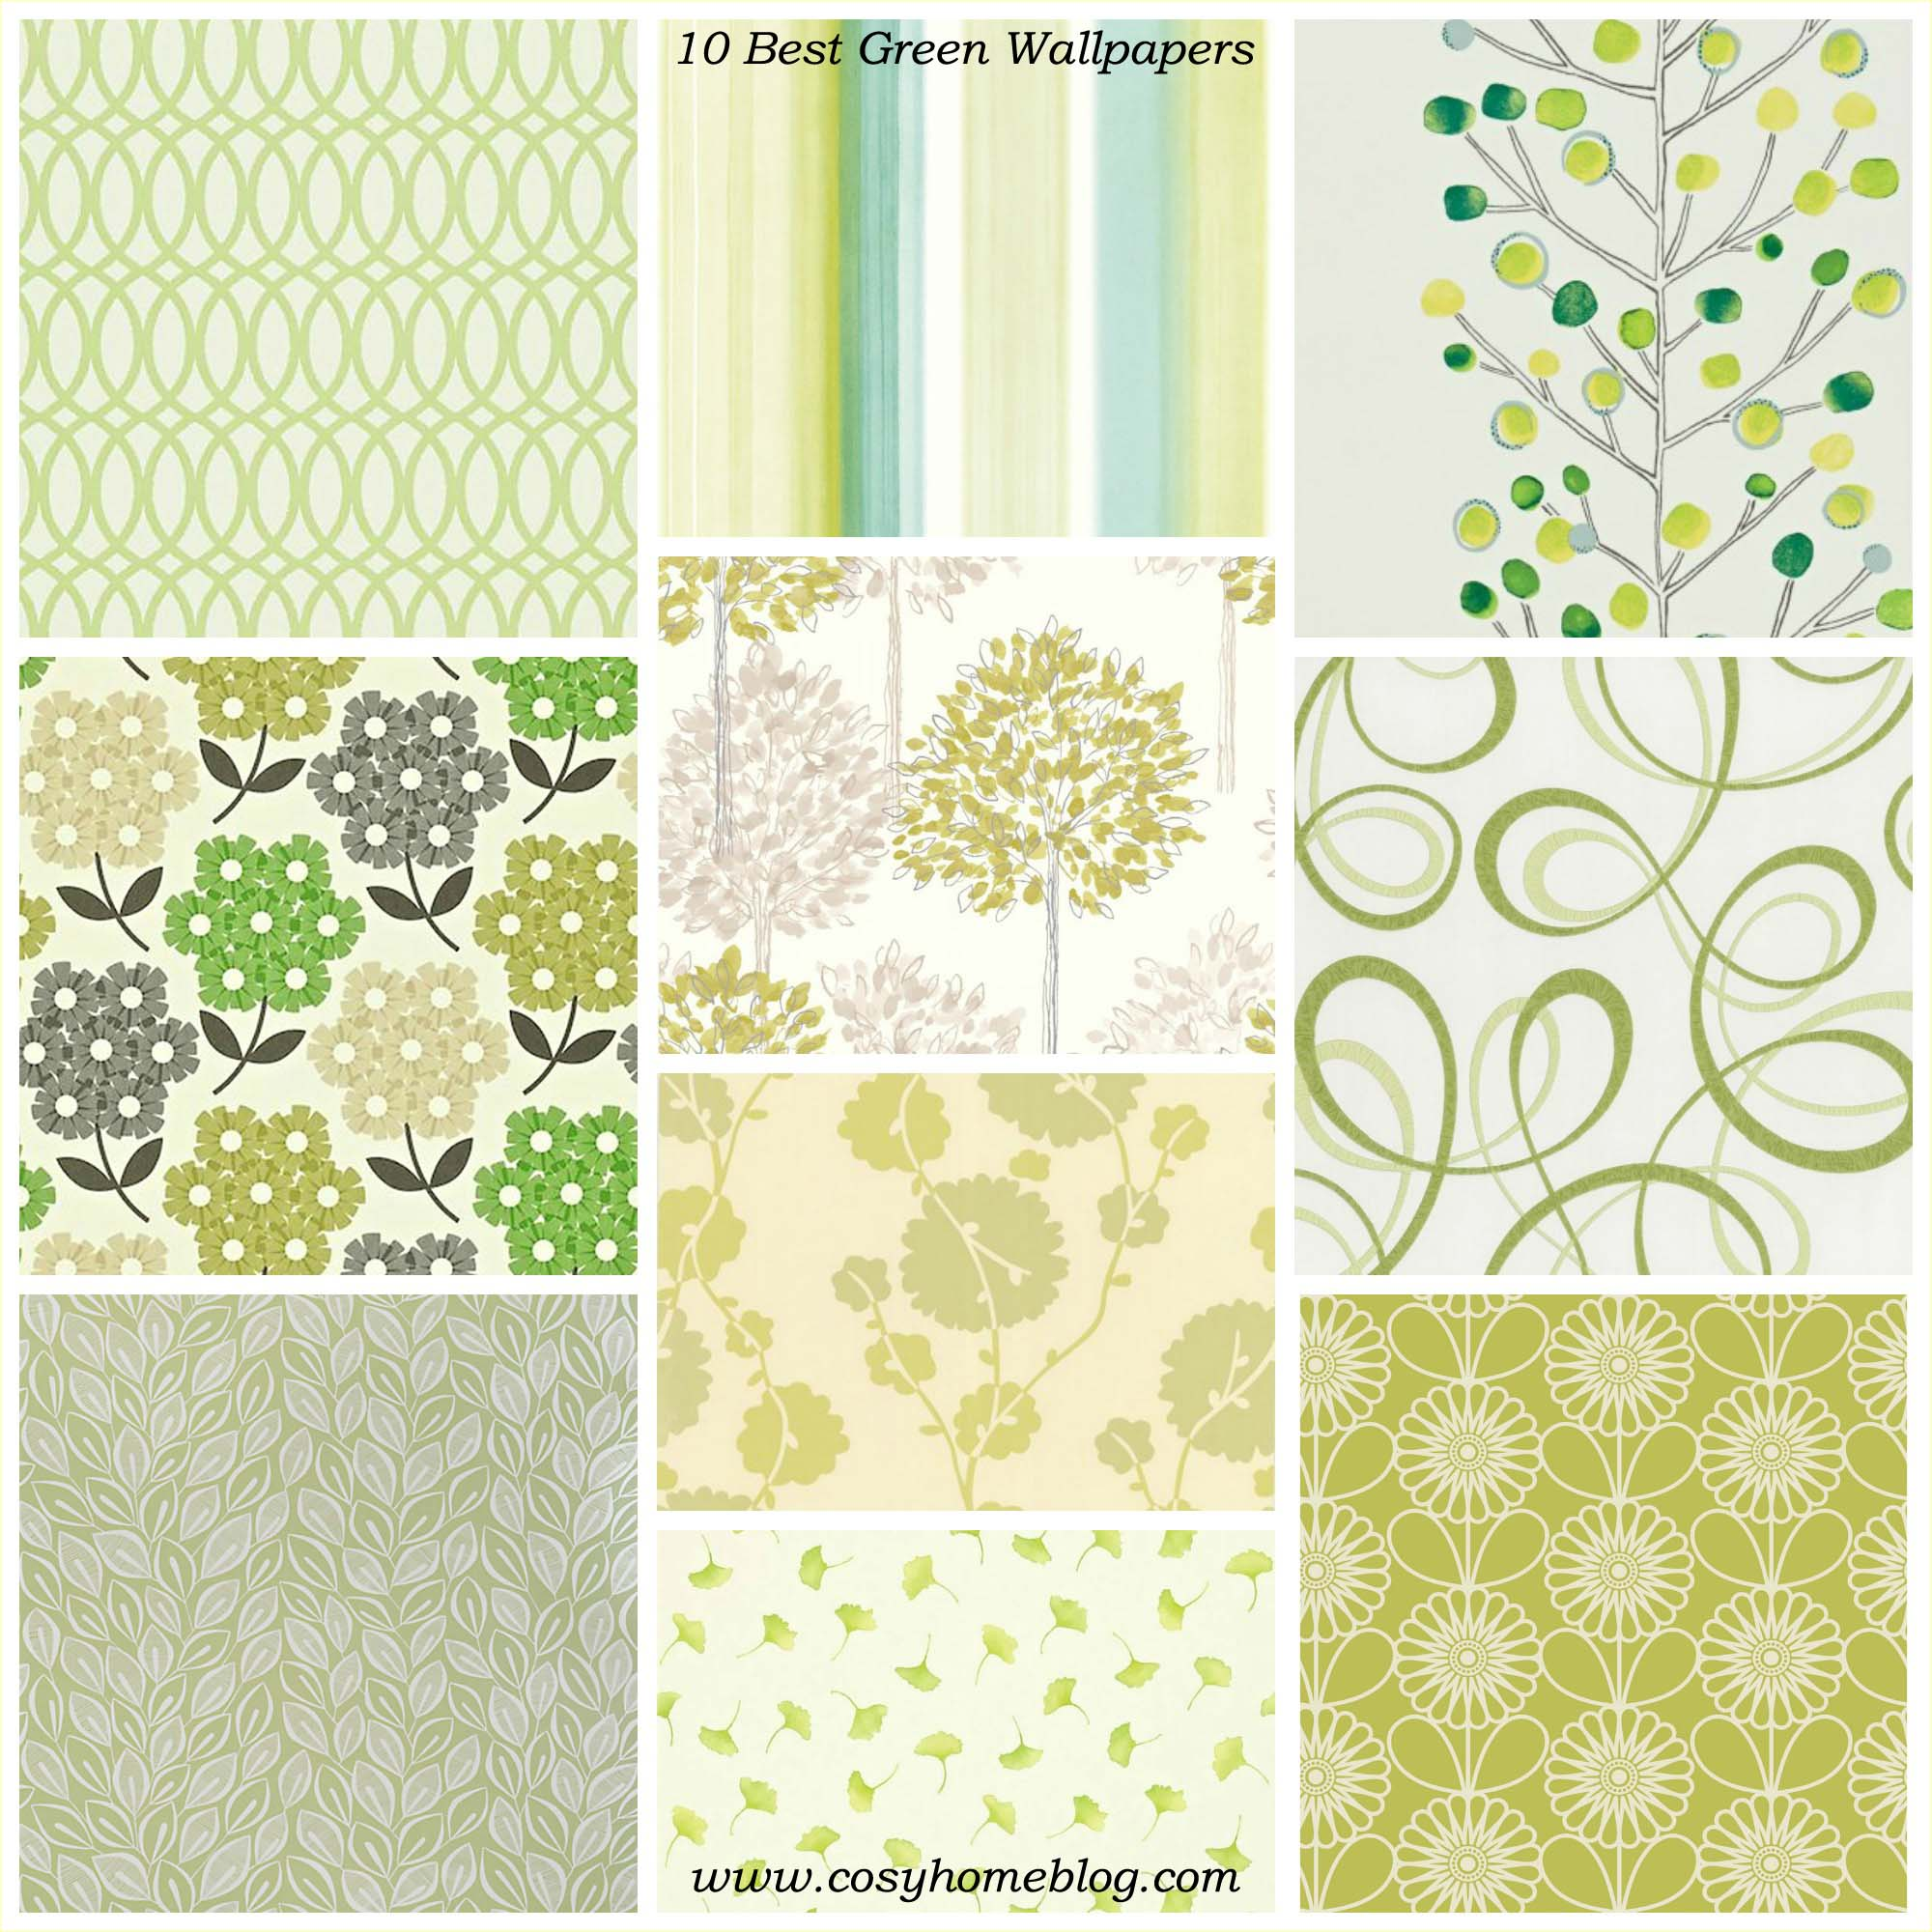 Spring greens 10 green wallpaper decorating ideas Cosy Home Blog 2000x2000